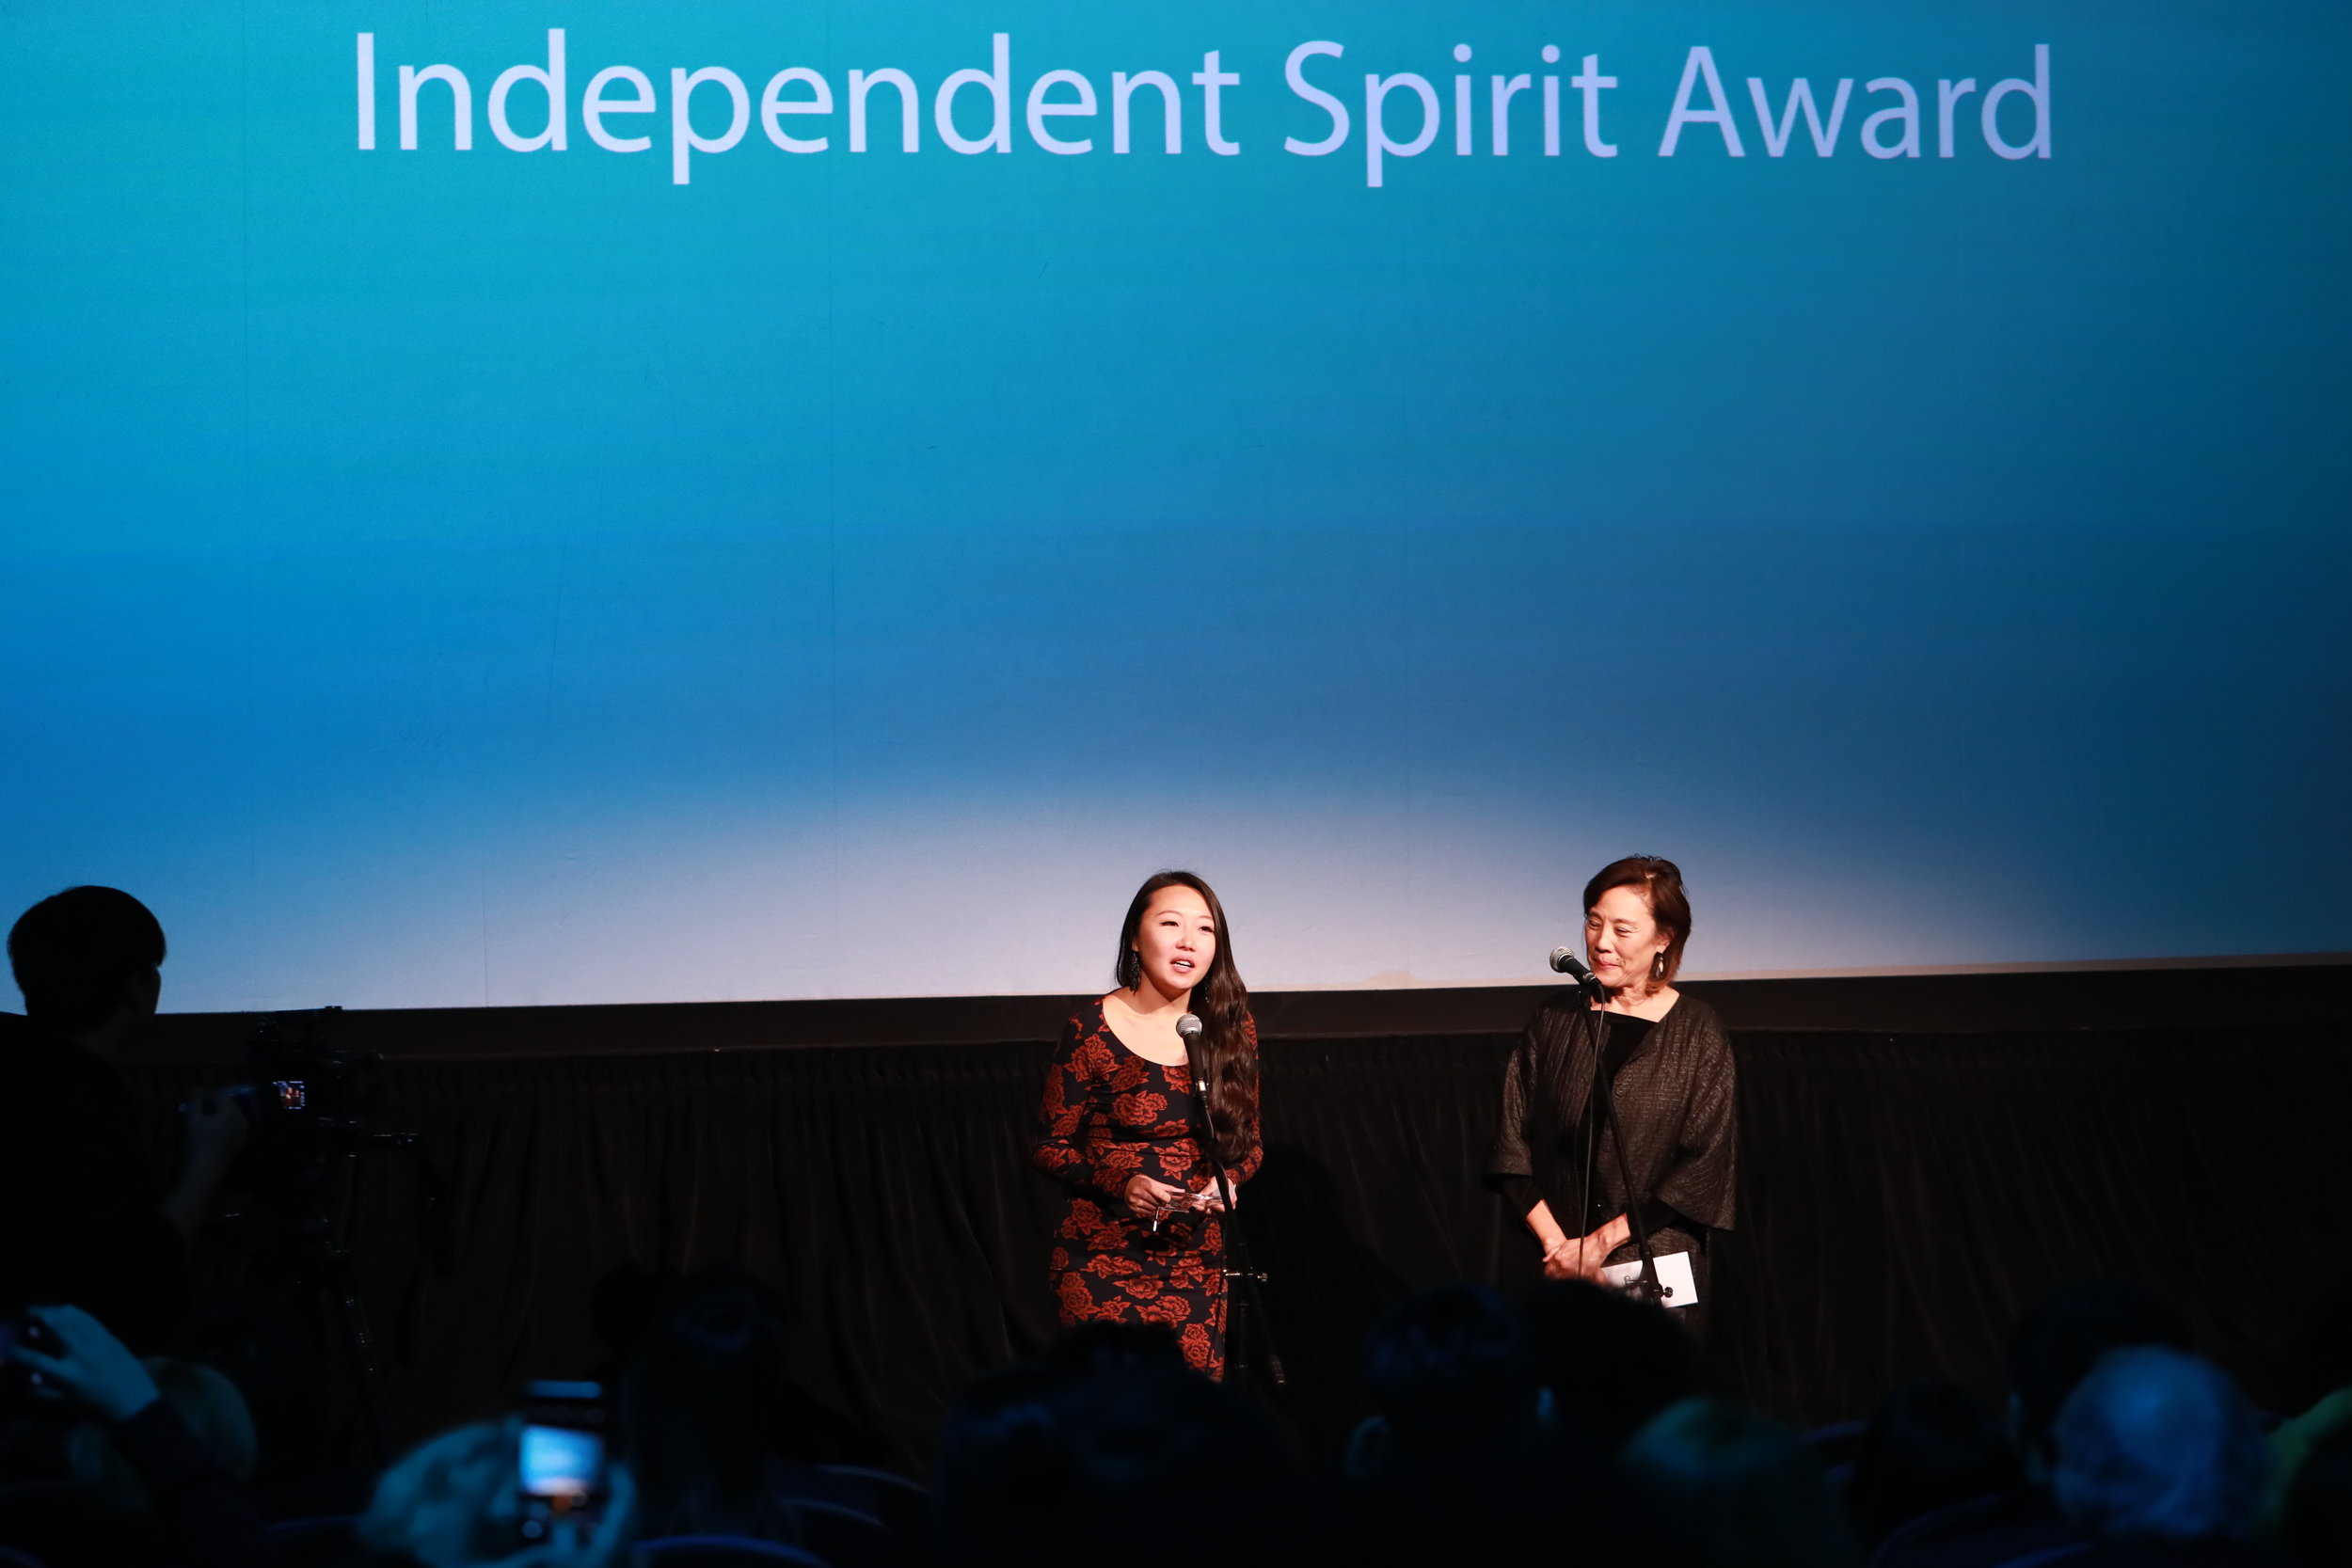 Janey Yang, chairwoman of advisory board presents the Independent Spirit Award (right) Wei Ying-chuan, scriptwriter of  The Last Painting  (left)